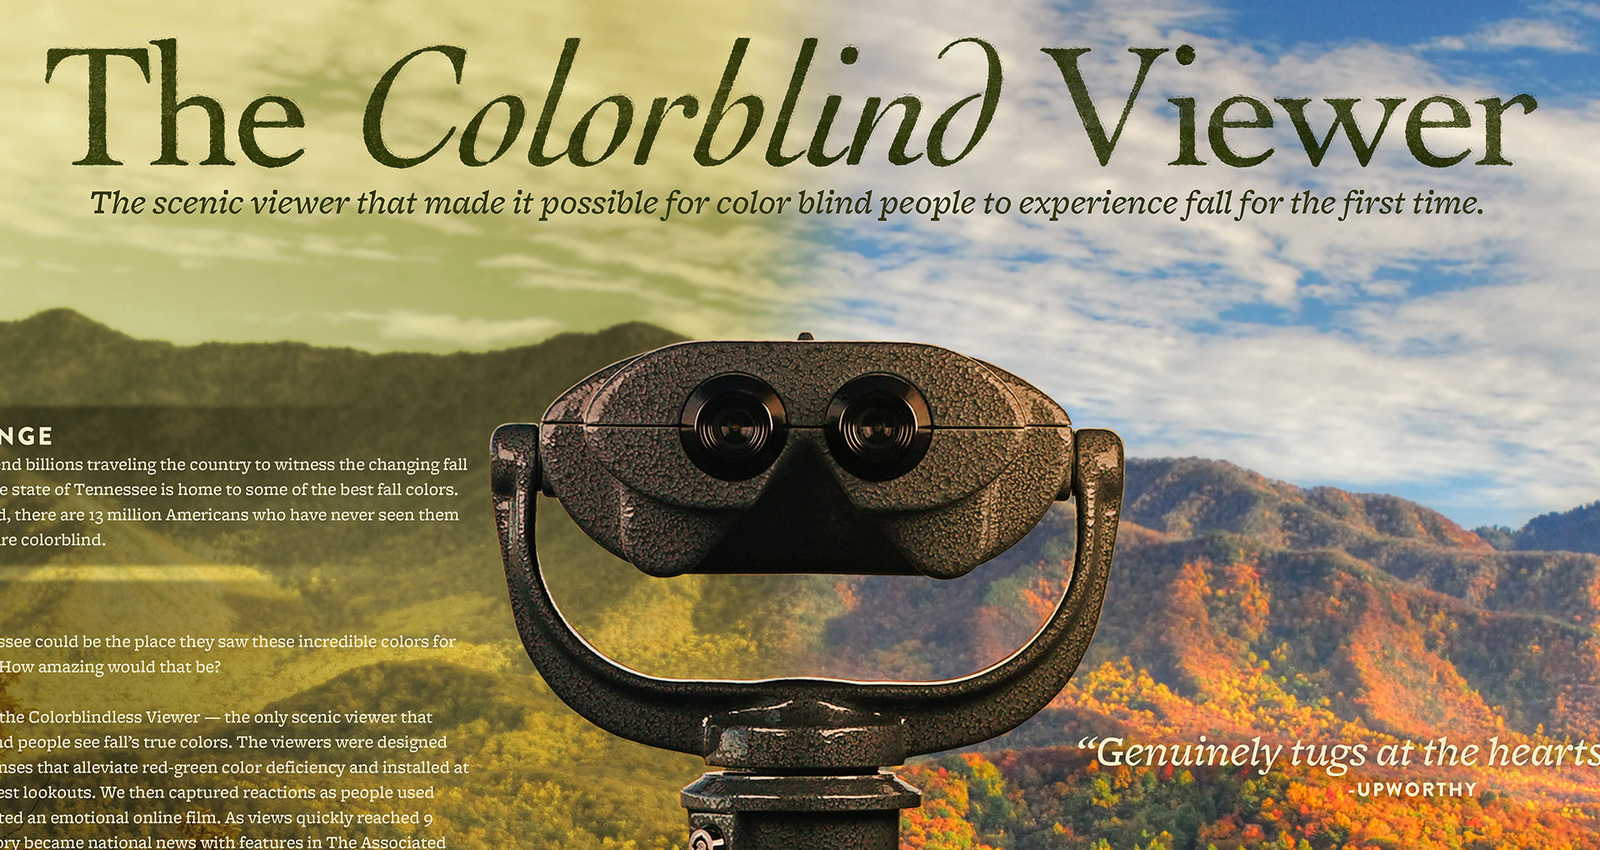 The Colorblind Viewer